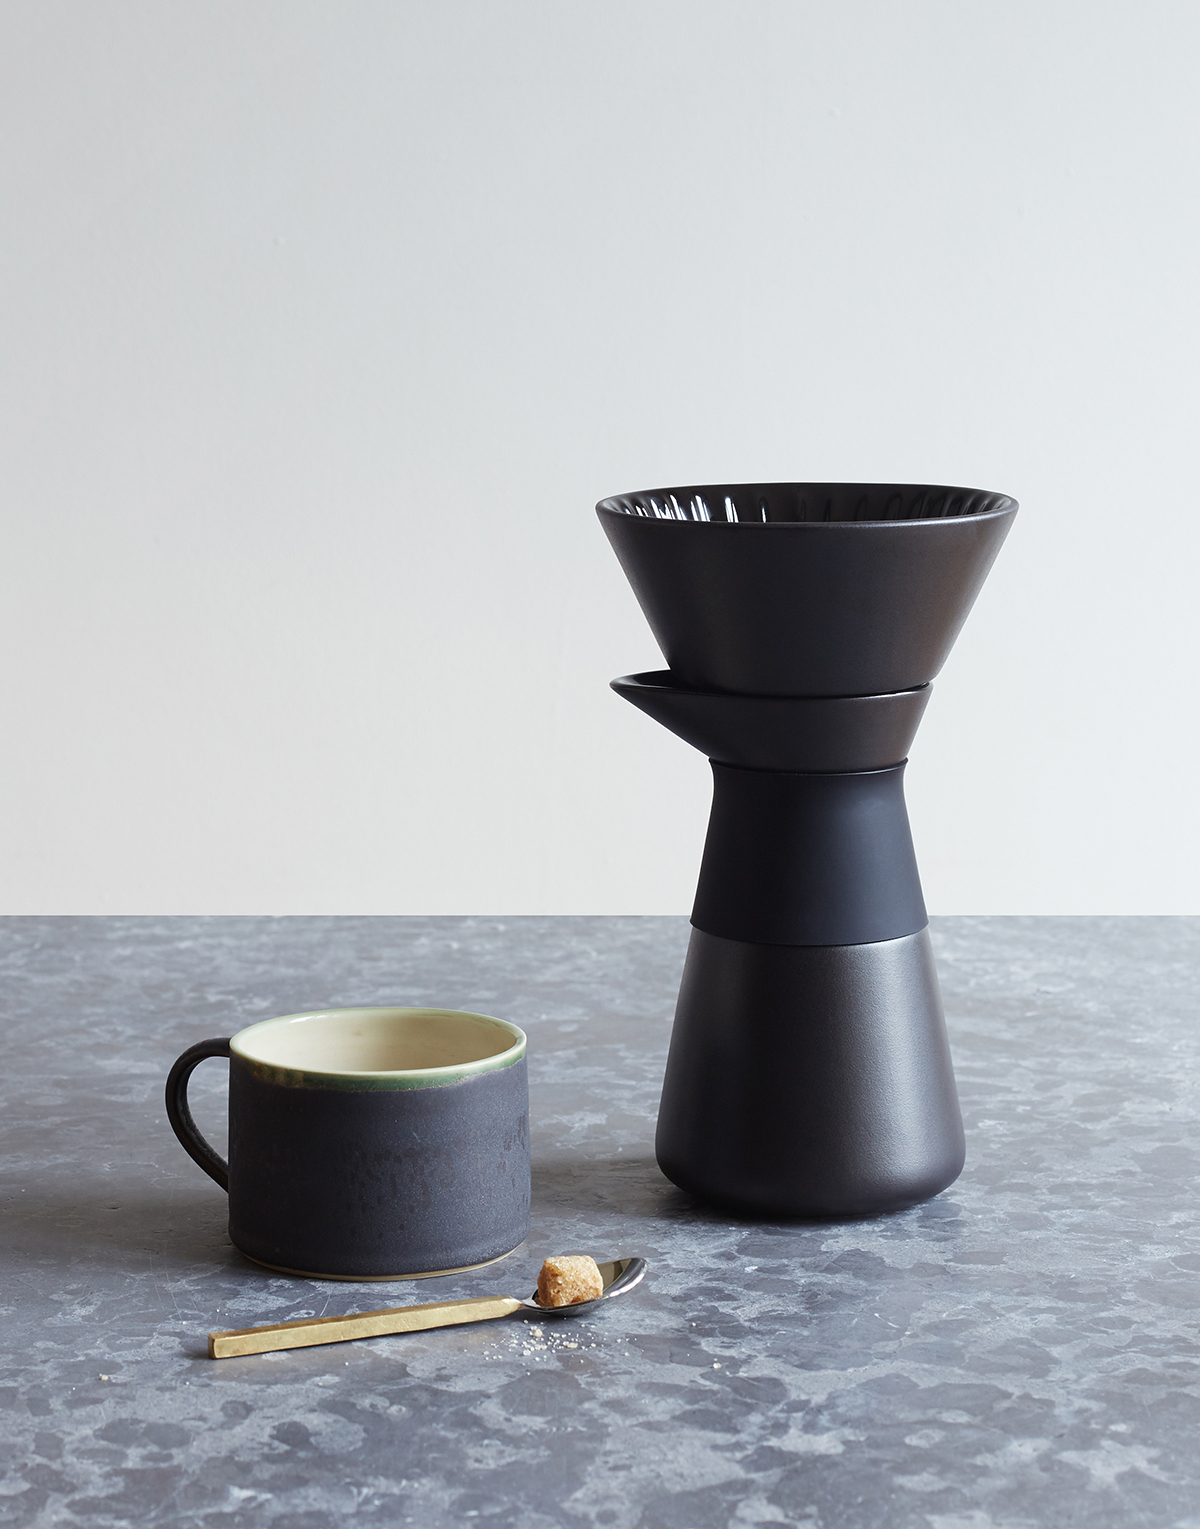 Theo 'Slow Brewer' Coffee Brewer,  Oggetto , £52.95  Danish design brand Stelton's award winning Theo range is a perfect gift for lovers of slow brew filter coffee.